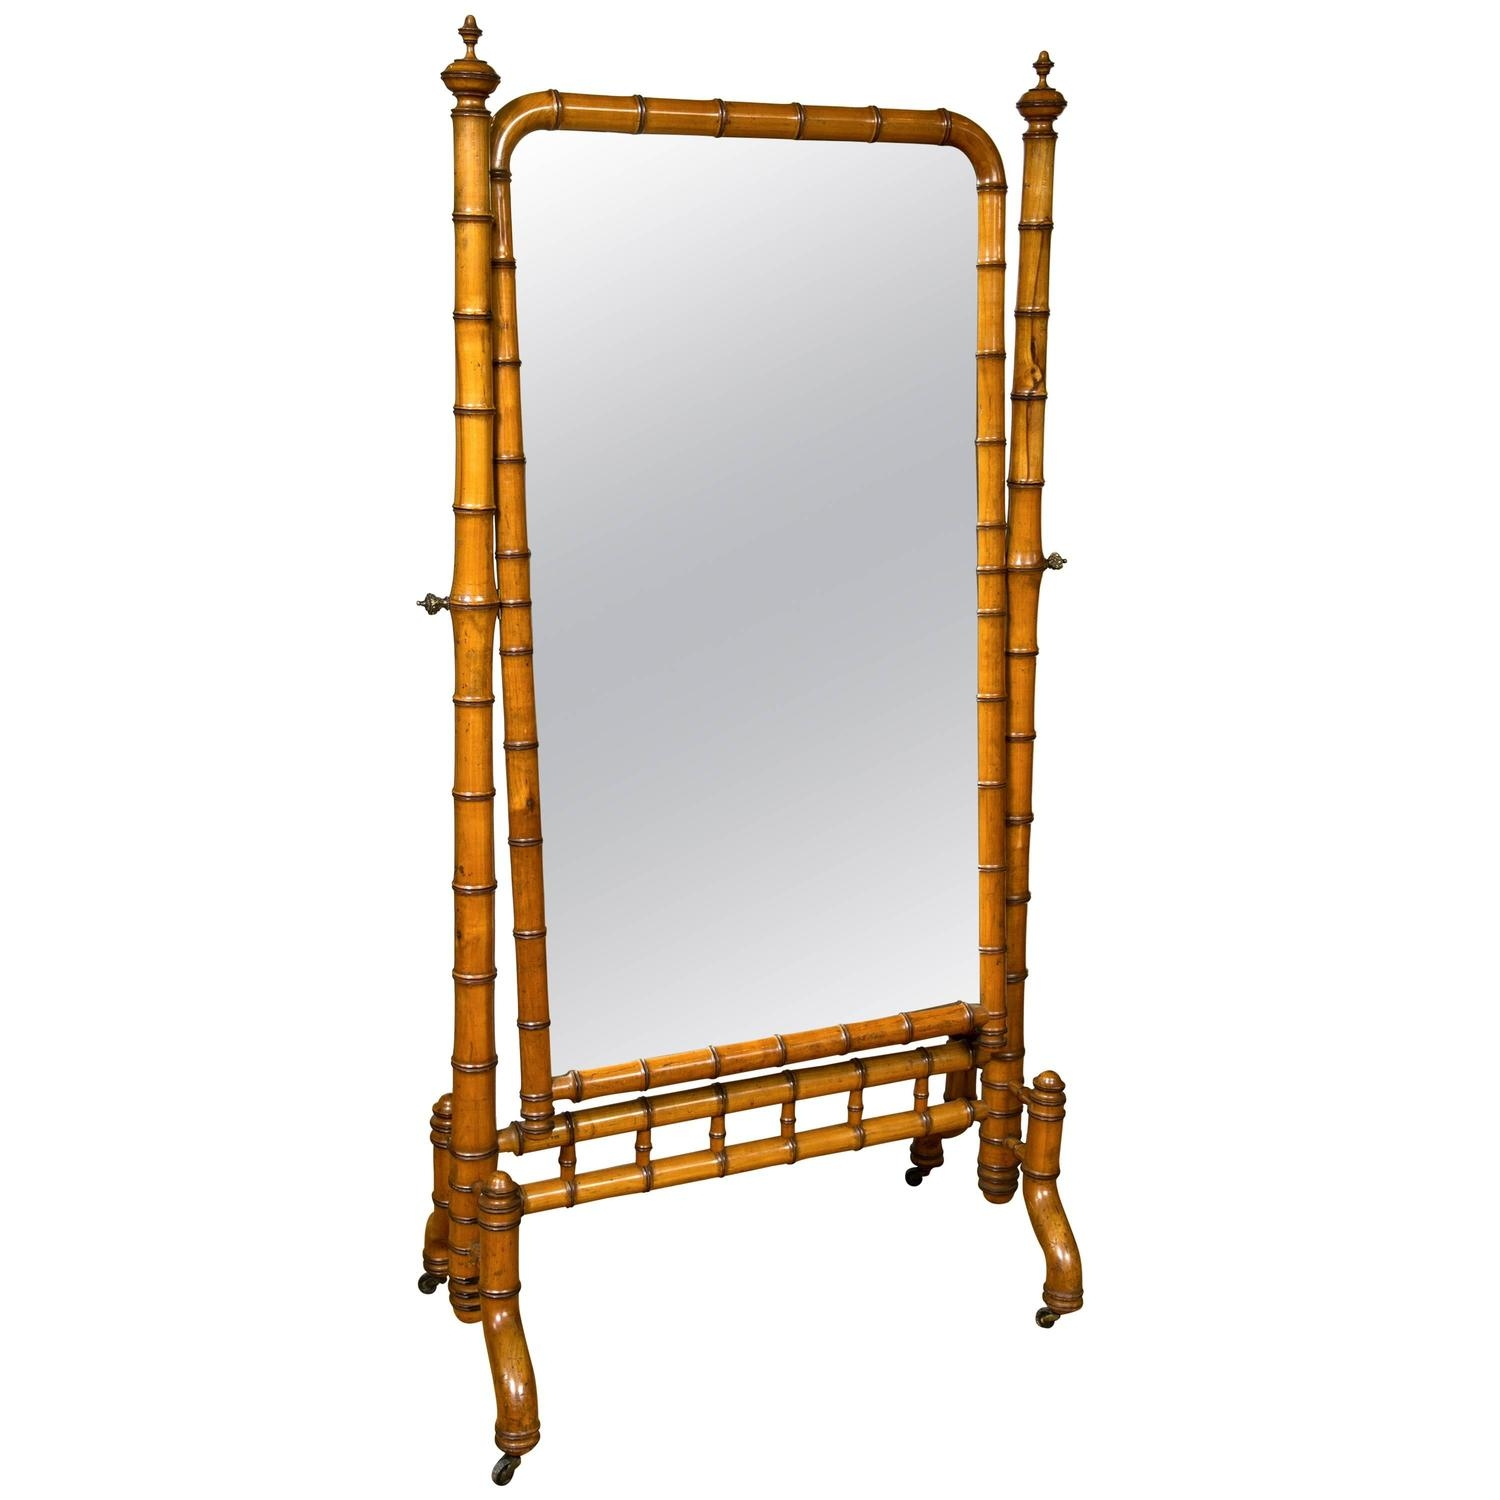 Victorian Era Aesthetic Movement Faux Bamboo Cheval Mirror Inside Victorian Floor Mirror (Image 14 of 15)